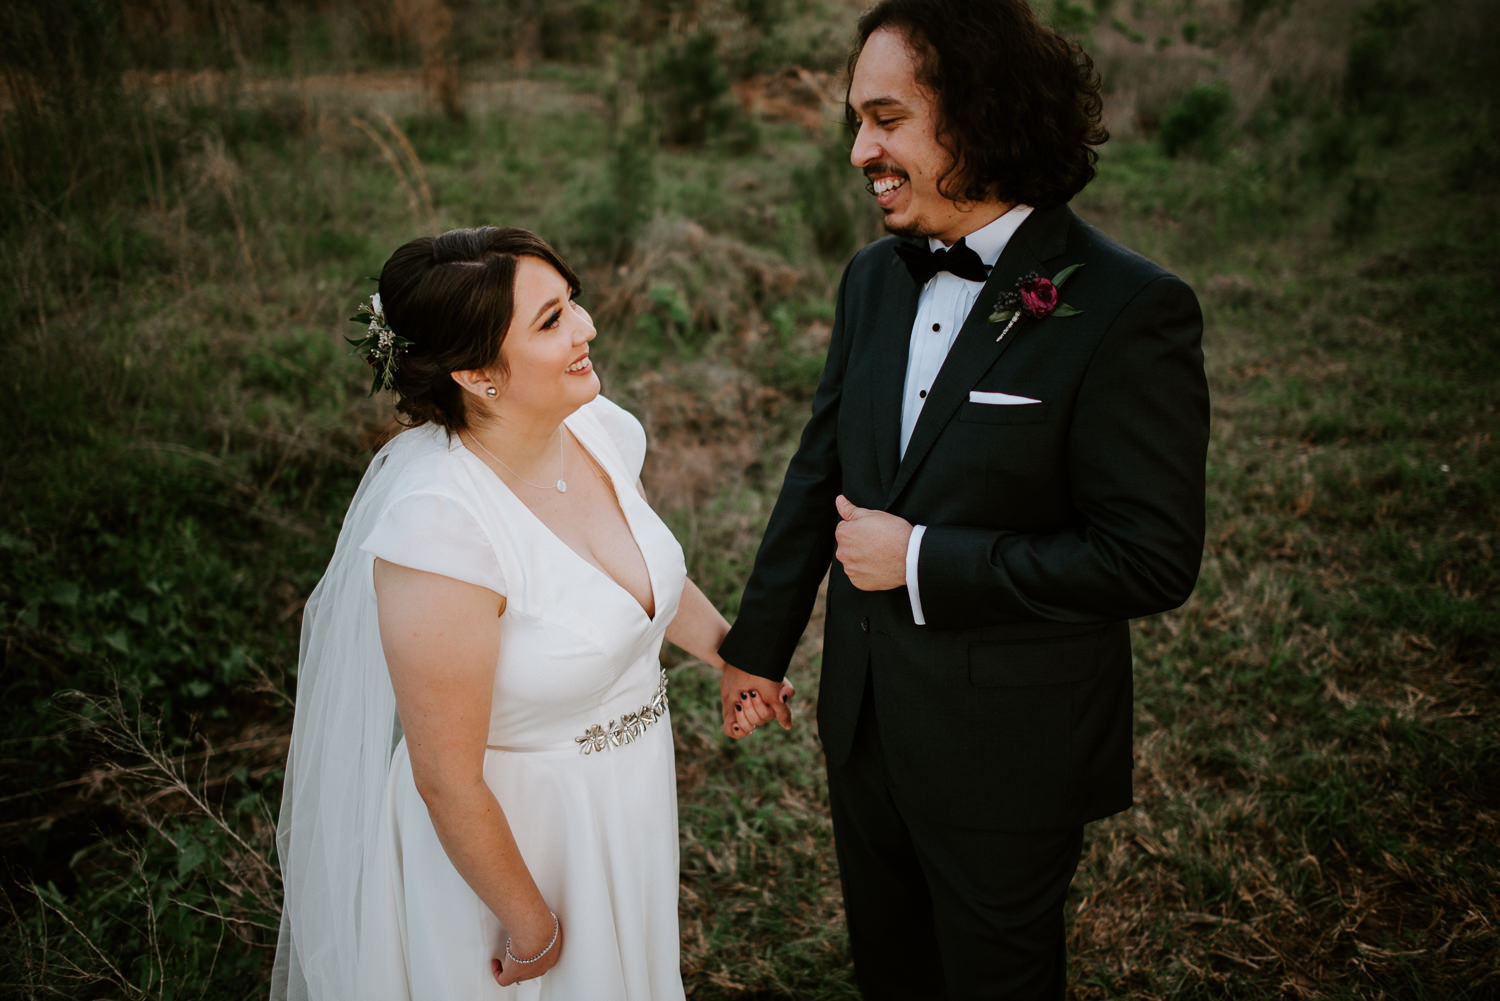 bride and groom laugh together at The Woodlands wedding